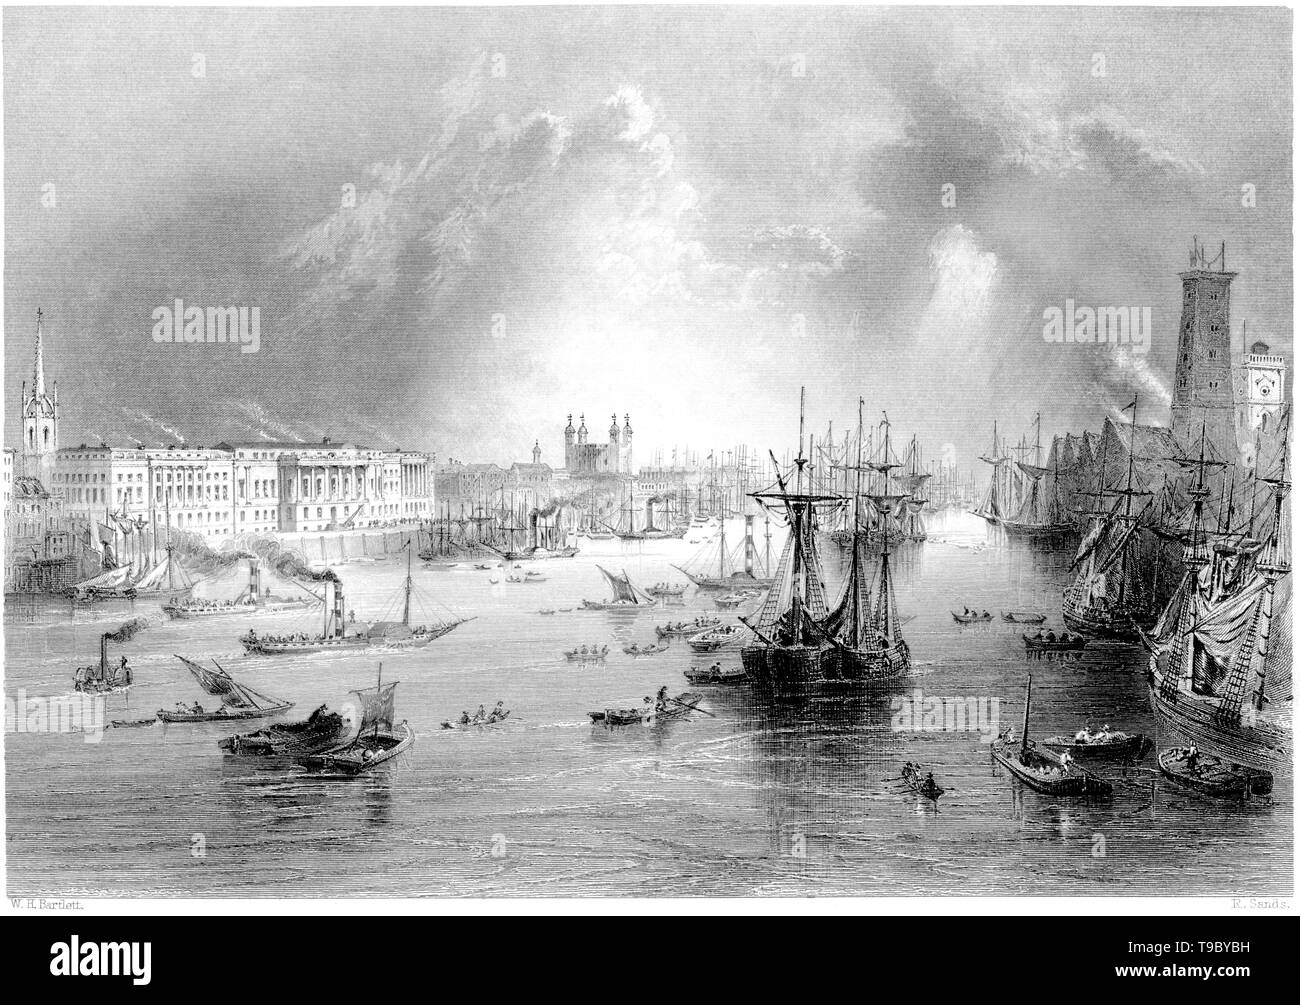 An engraving of the Port of London scanned at high resolution from a book published in 1842.  Believed copyright free. - Stock Image